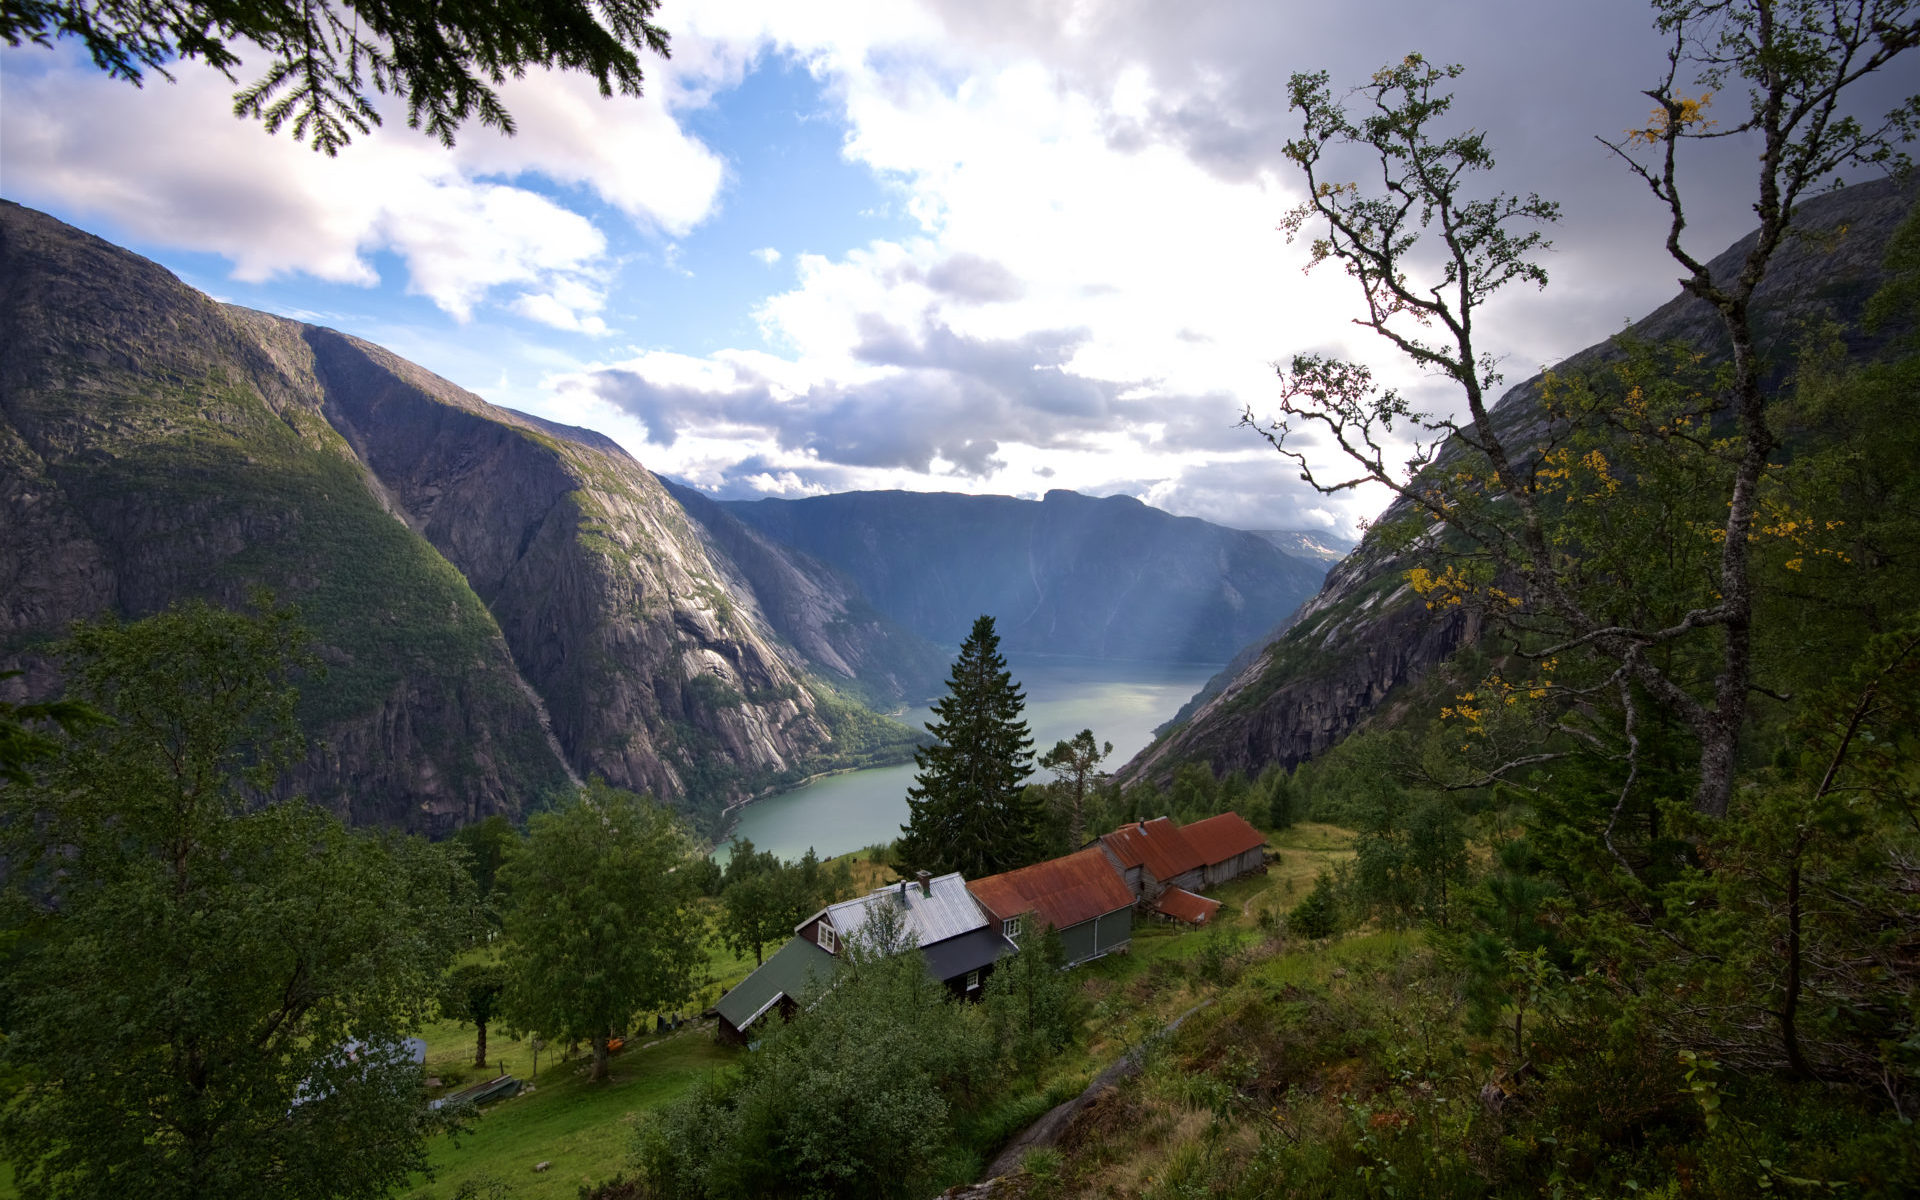 The Hardangerfjord in Norway seen from Kjeåsen Mountain Farm.